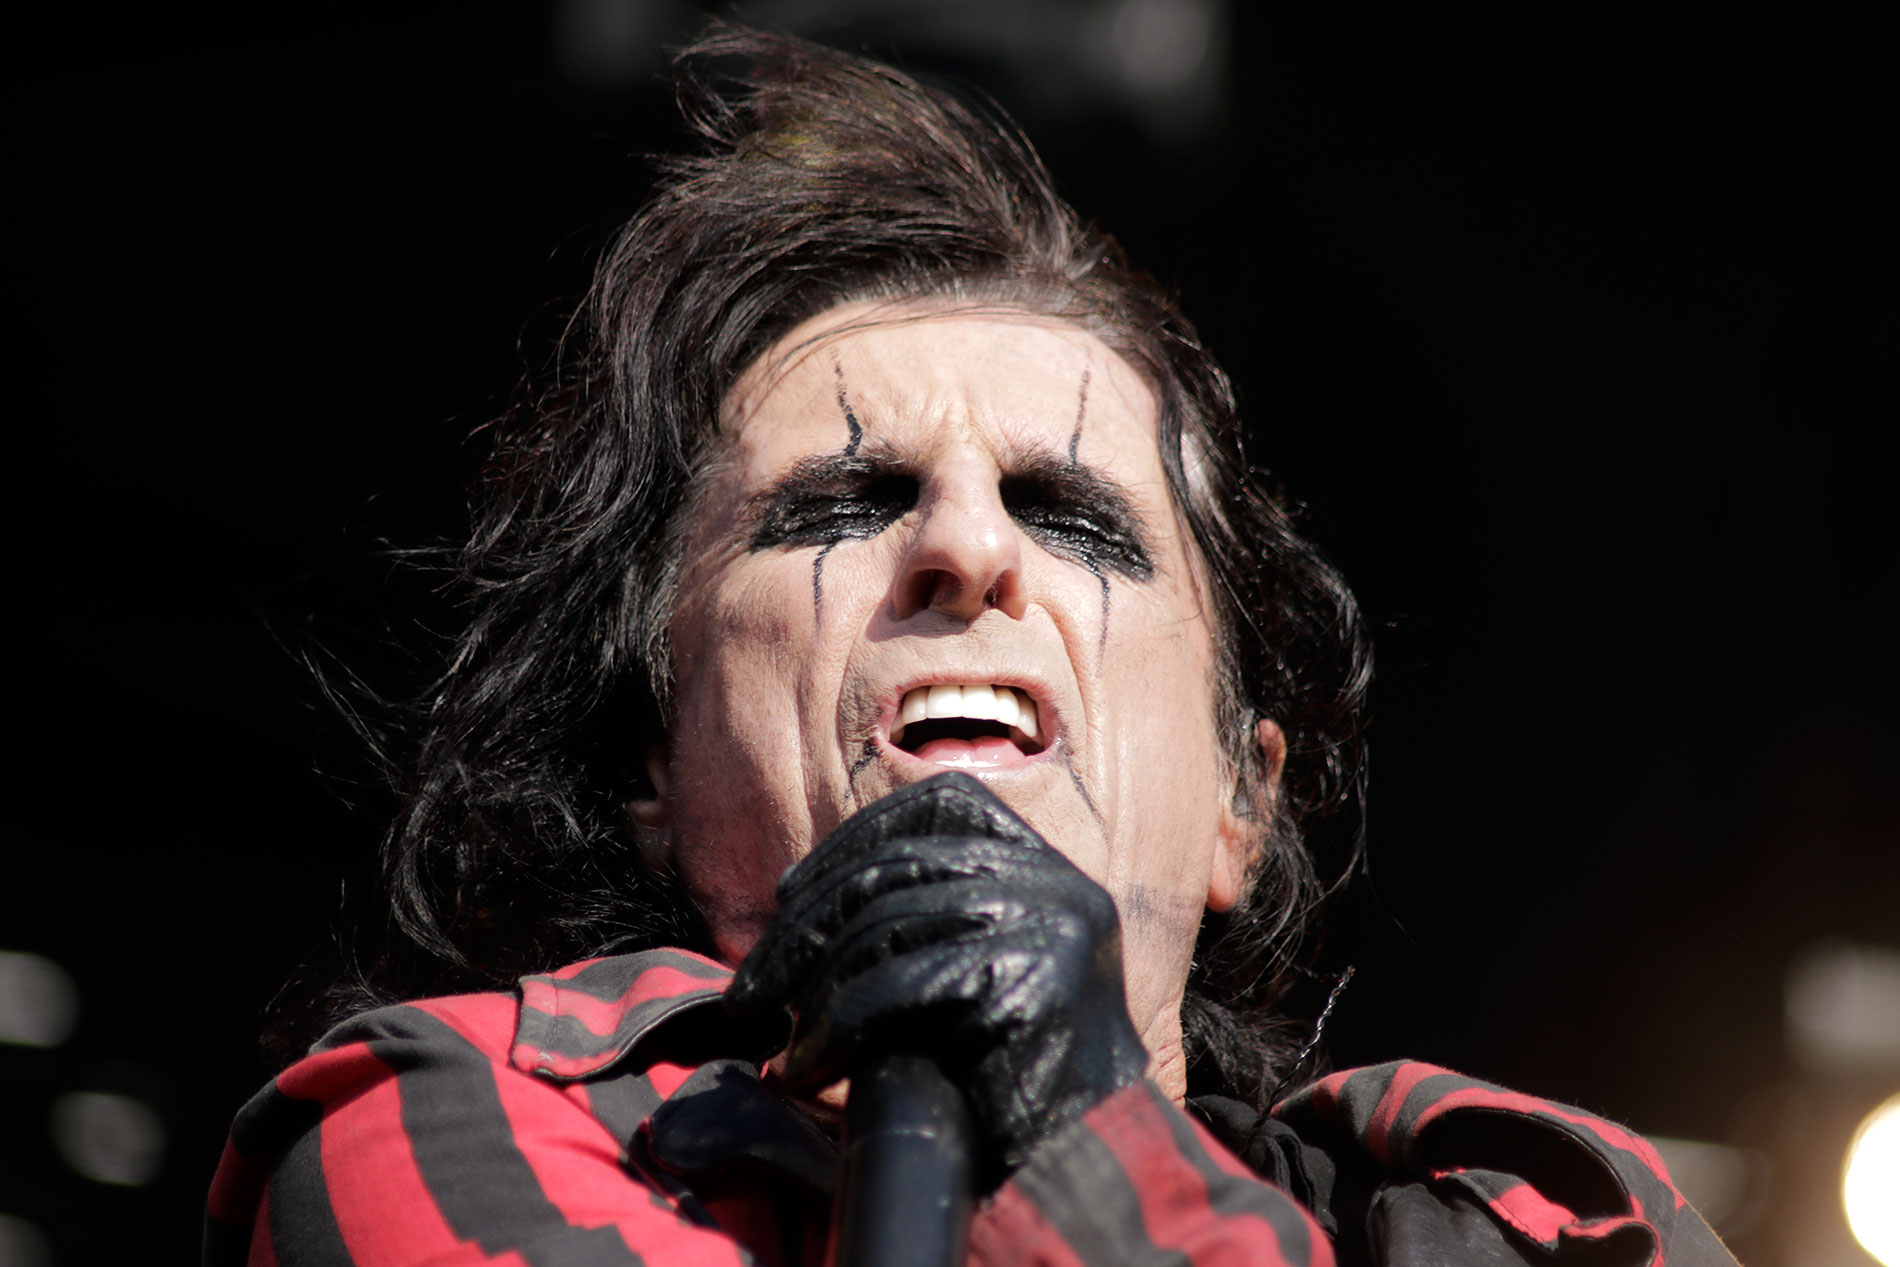 Tuska Pulls a Crowd of Over 25,000 – Alice Cooper Gives the Performance of a Lifetime